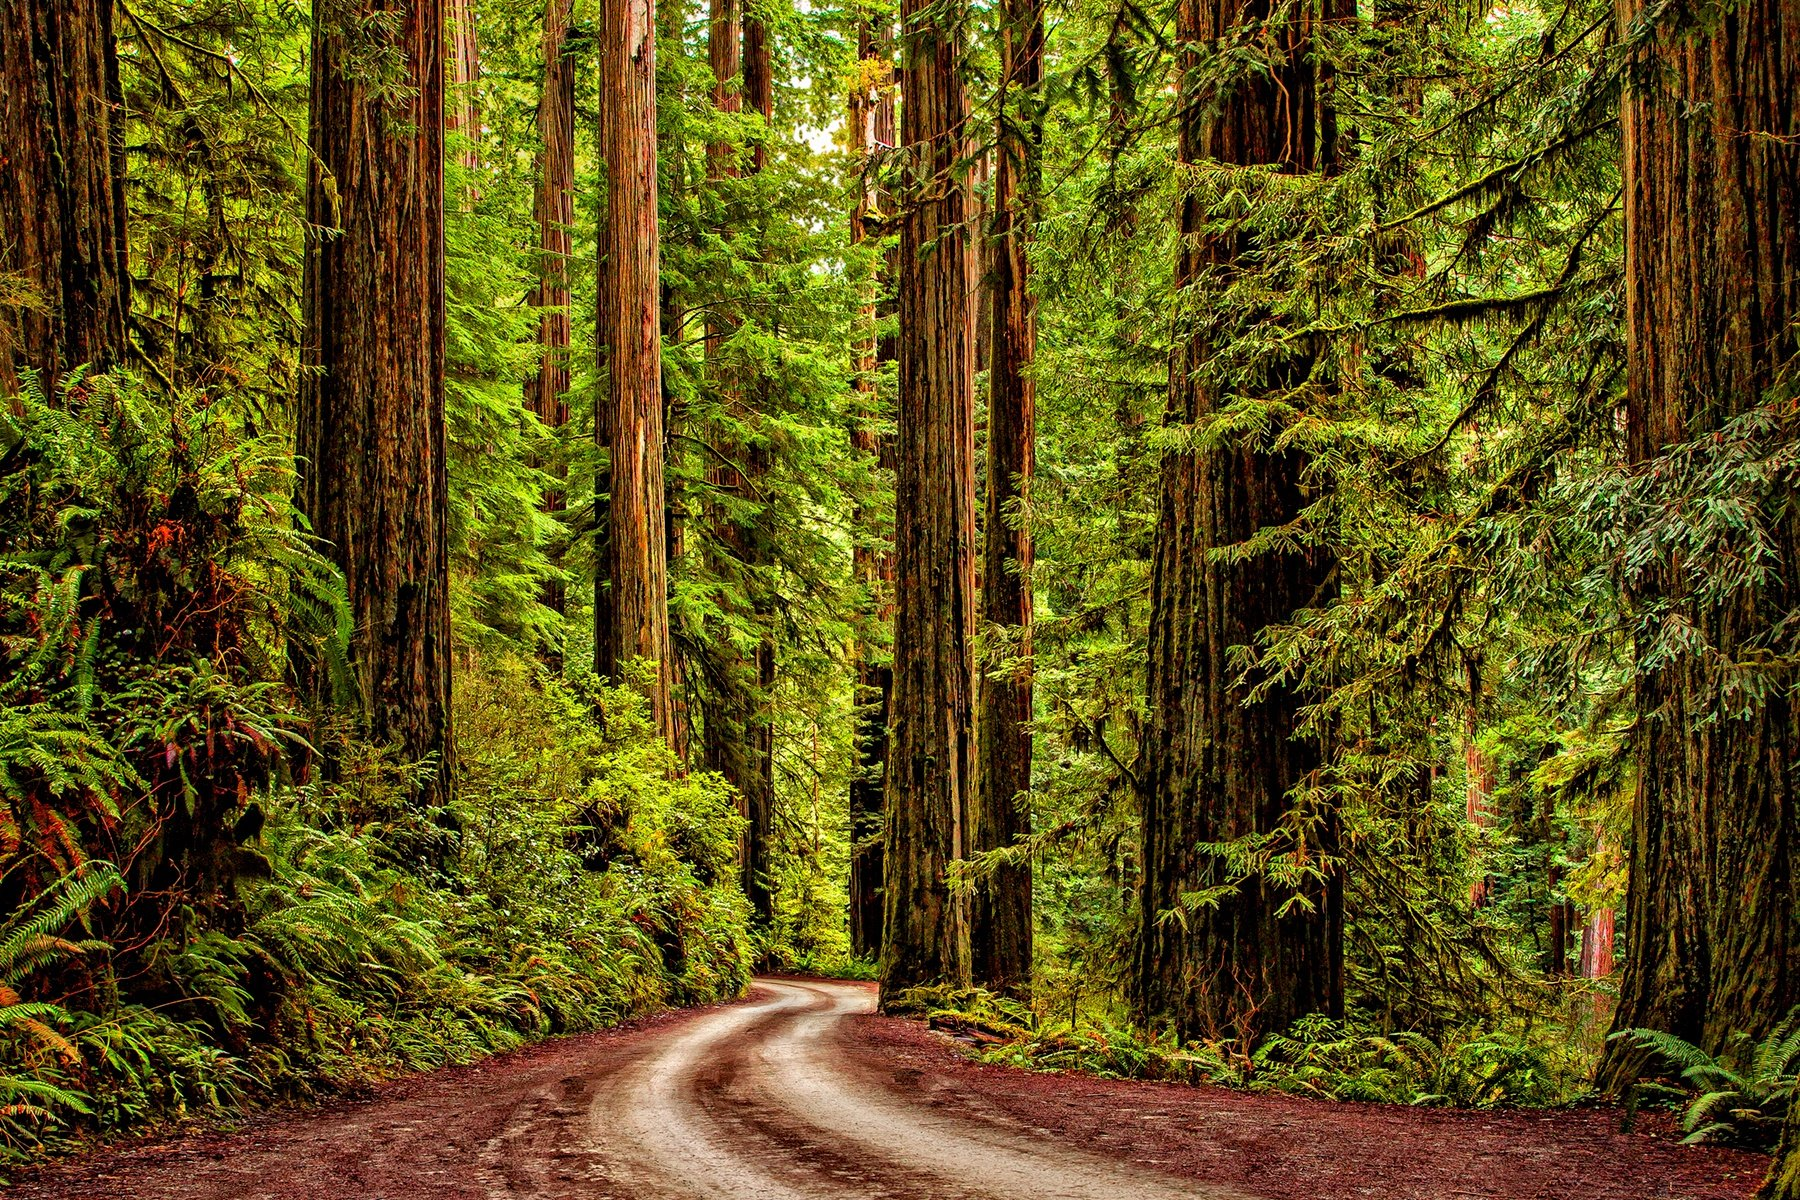 REDWOOD ROAD - This unbelievable drive winds for several miles across the forest floor of Jedediah Smith Redwood State Park in northern California. If you need a reason to travel to California, this is it.